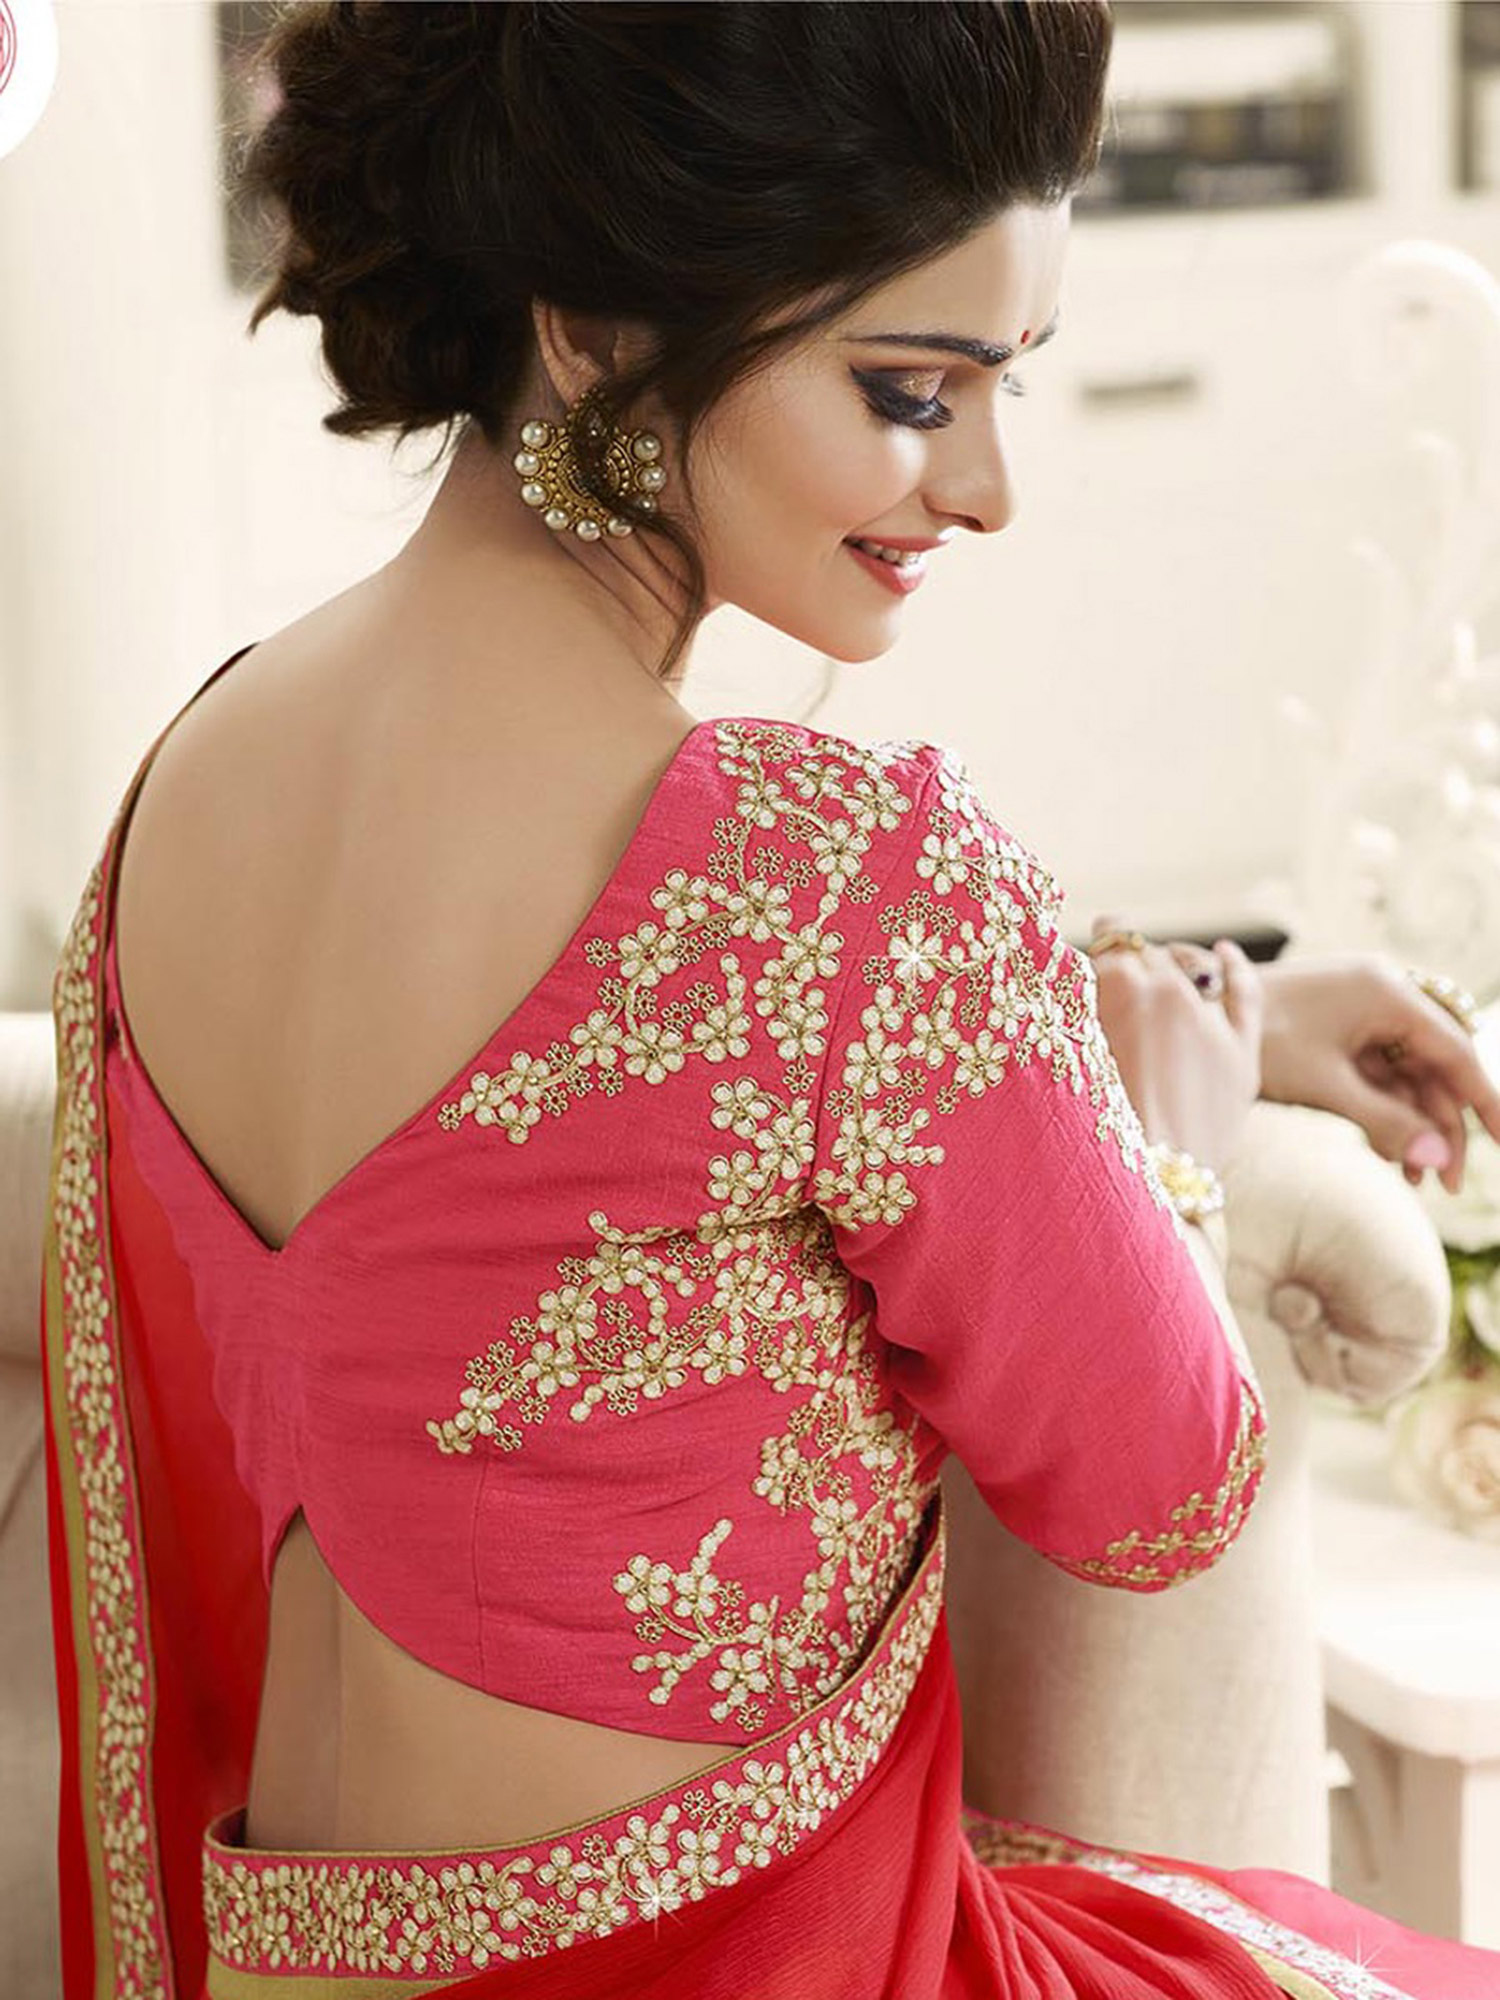 Shaded Pink - Red Chiffon Saree With Embroidered Blouse